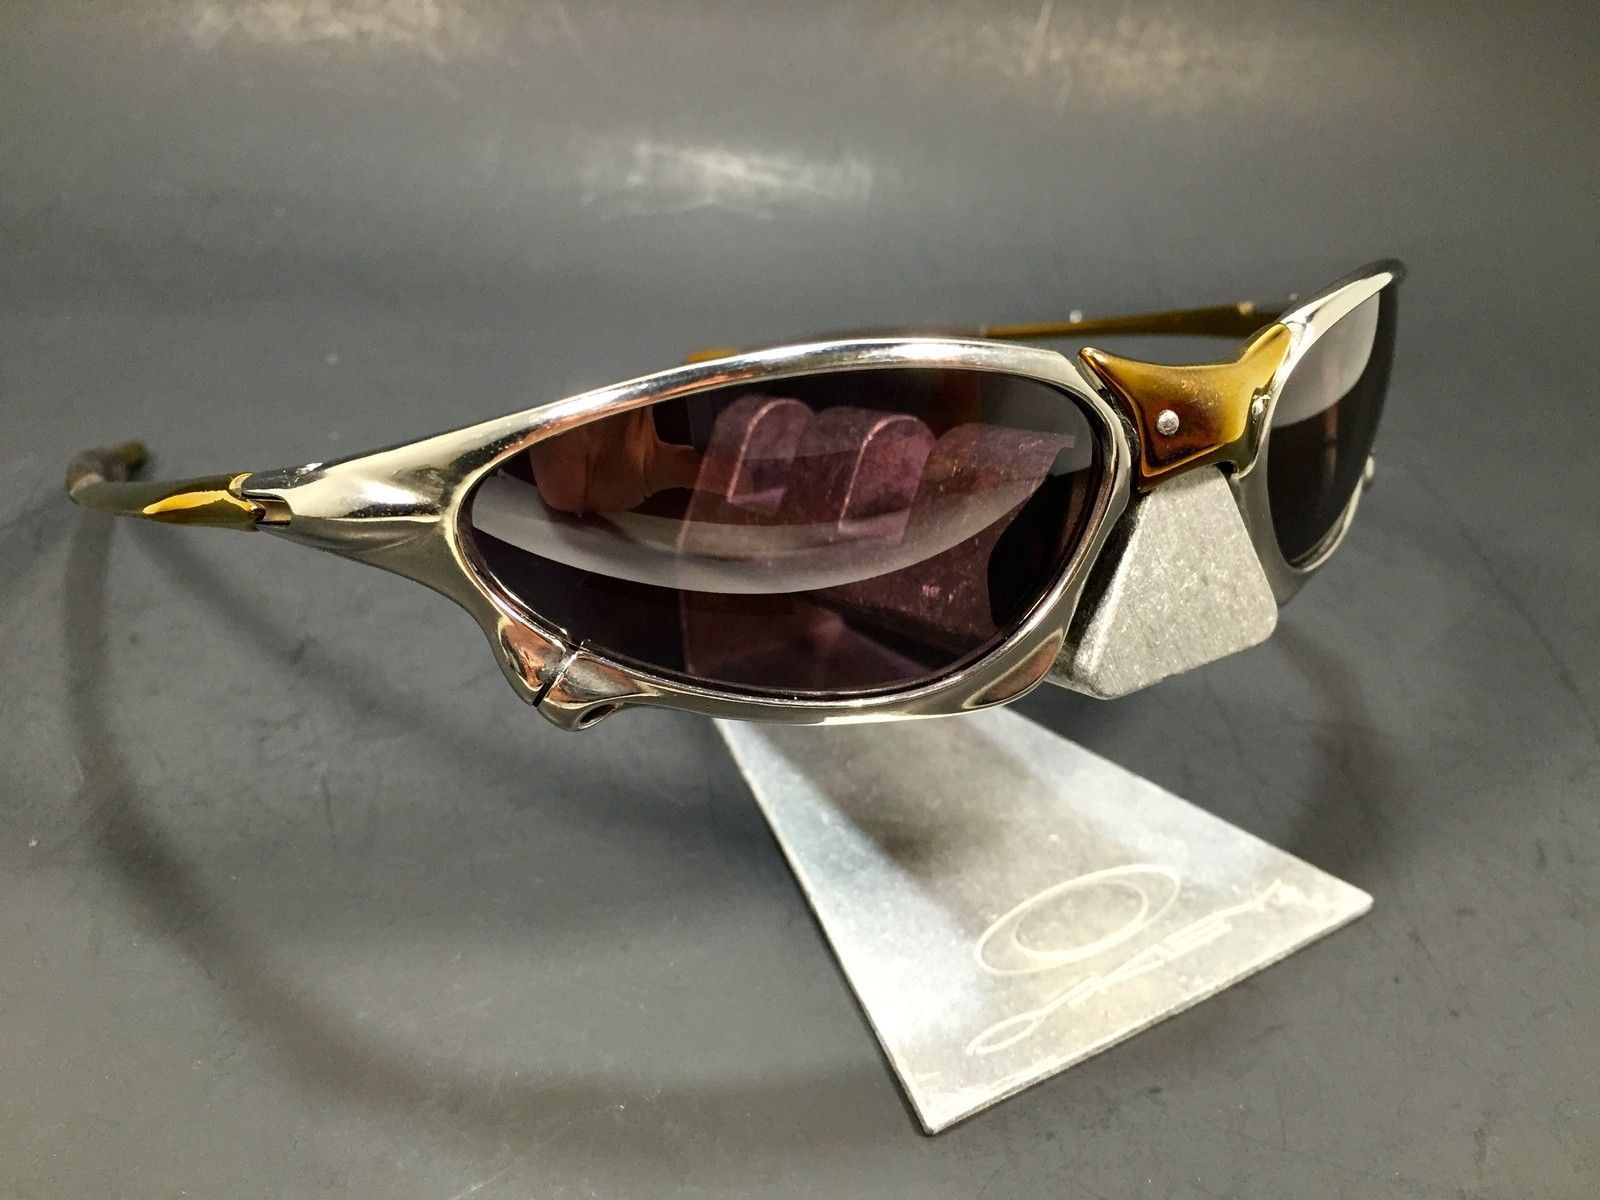 Anodized Ti-Cu Polished Penny w/ Prizm Daily Polar Lenses - IMG_2155.JPG